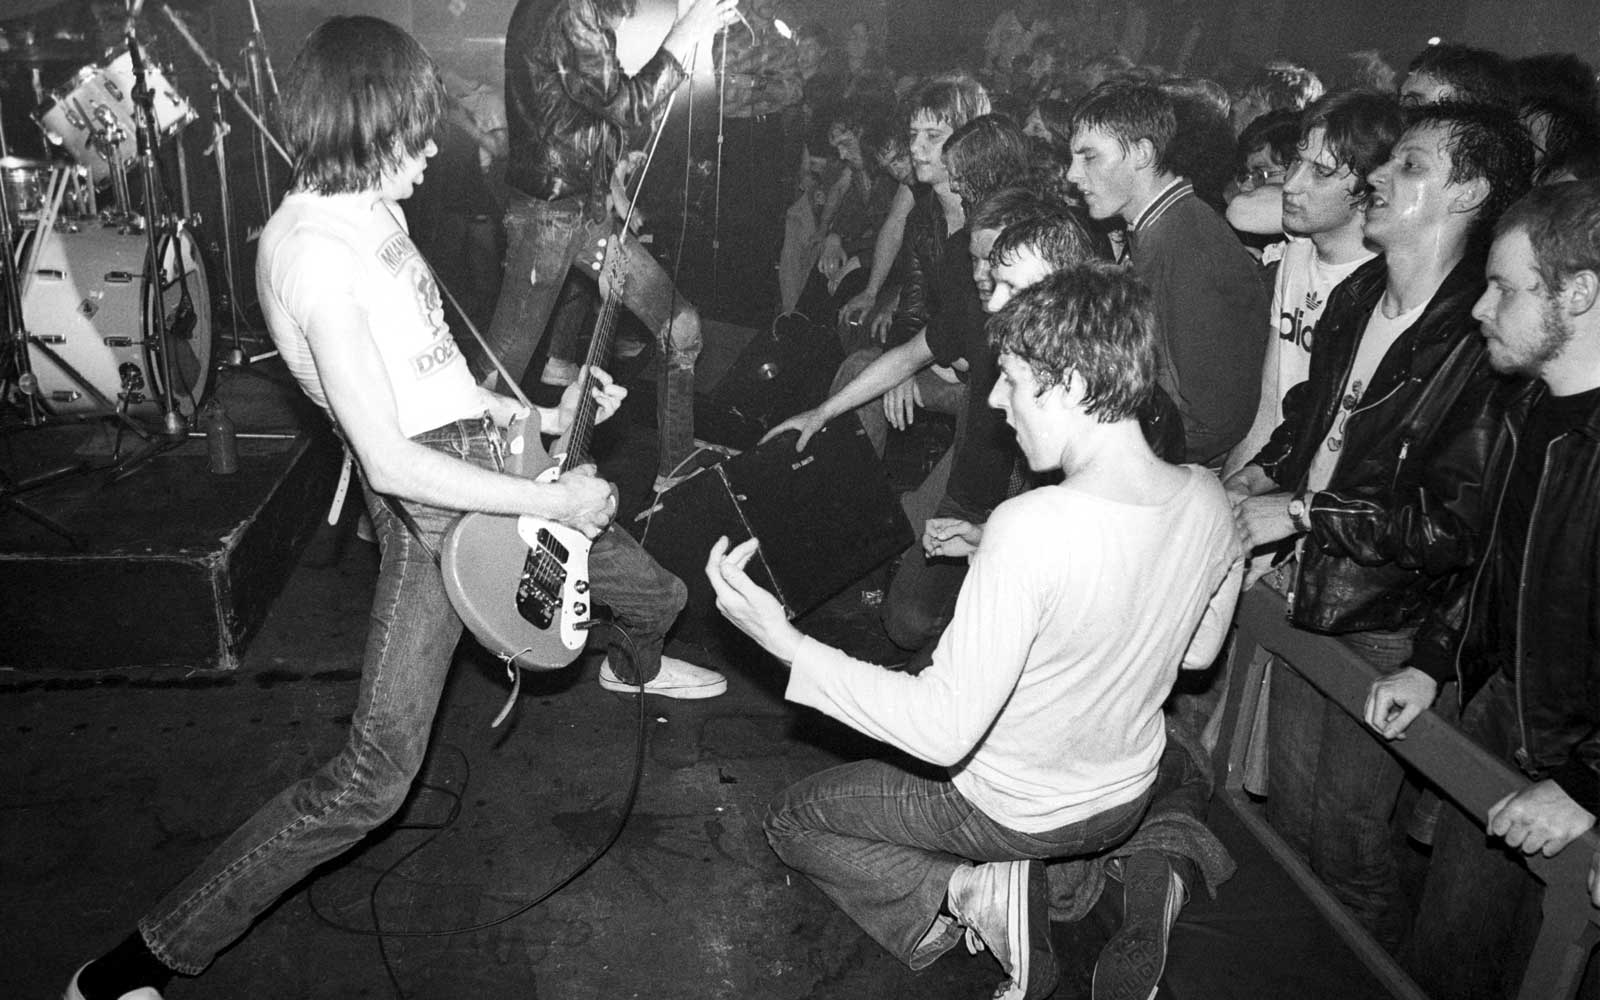 Punk fans in the audience crowd over the front of the stage and play air guitar as Joey Ramone and Johnny Ramone of The Ramones perform at Eric's club, Liverpool, 19 May 1977.